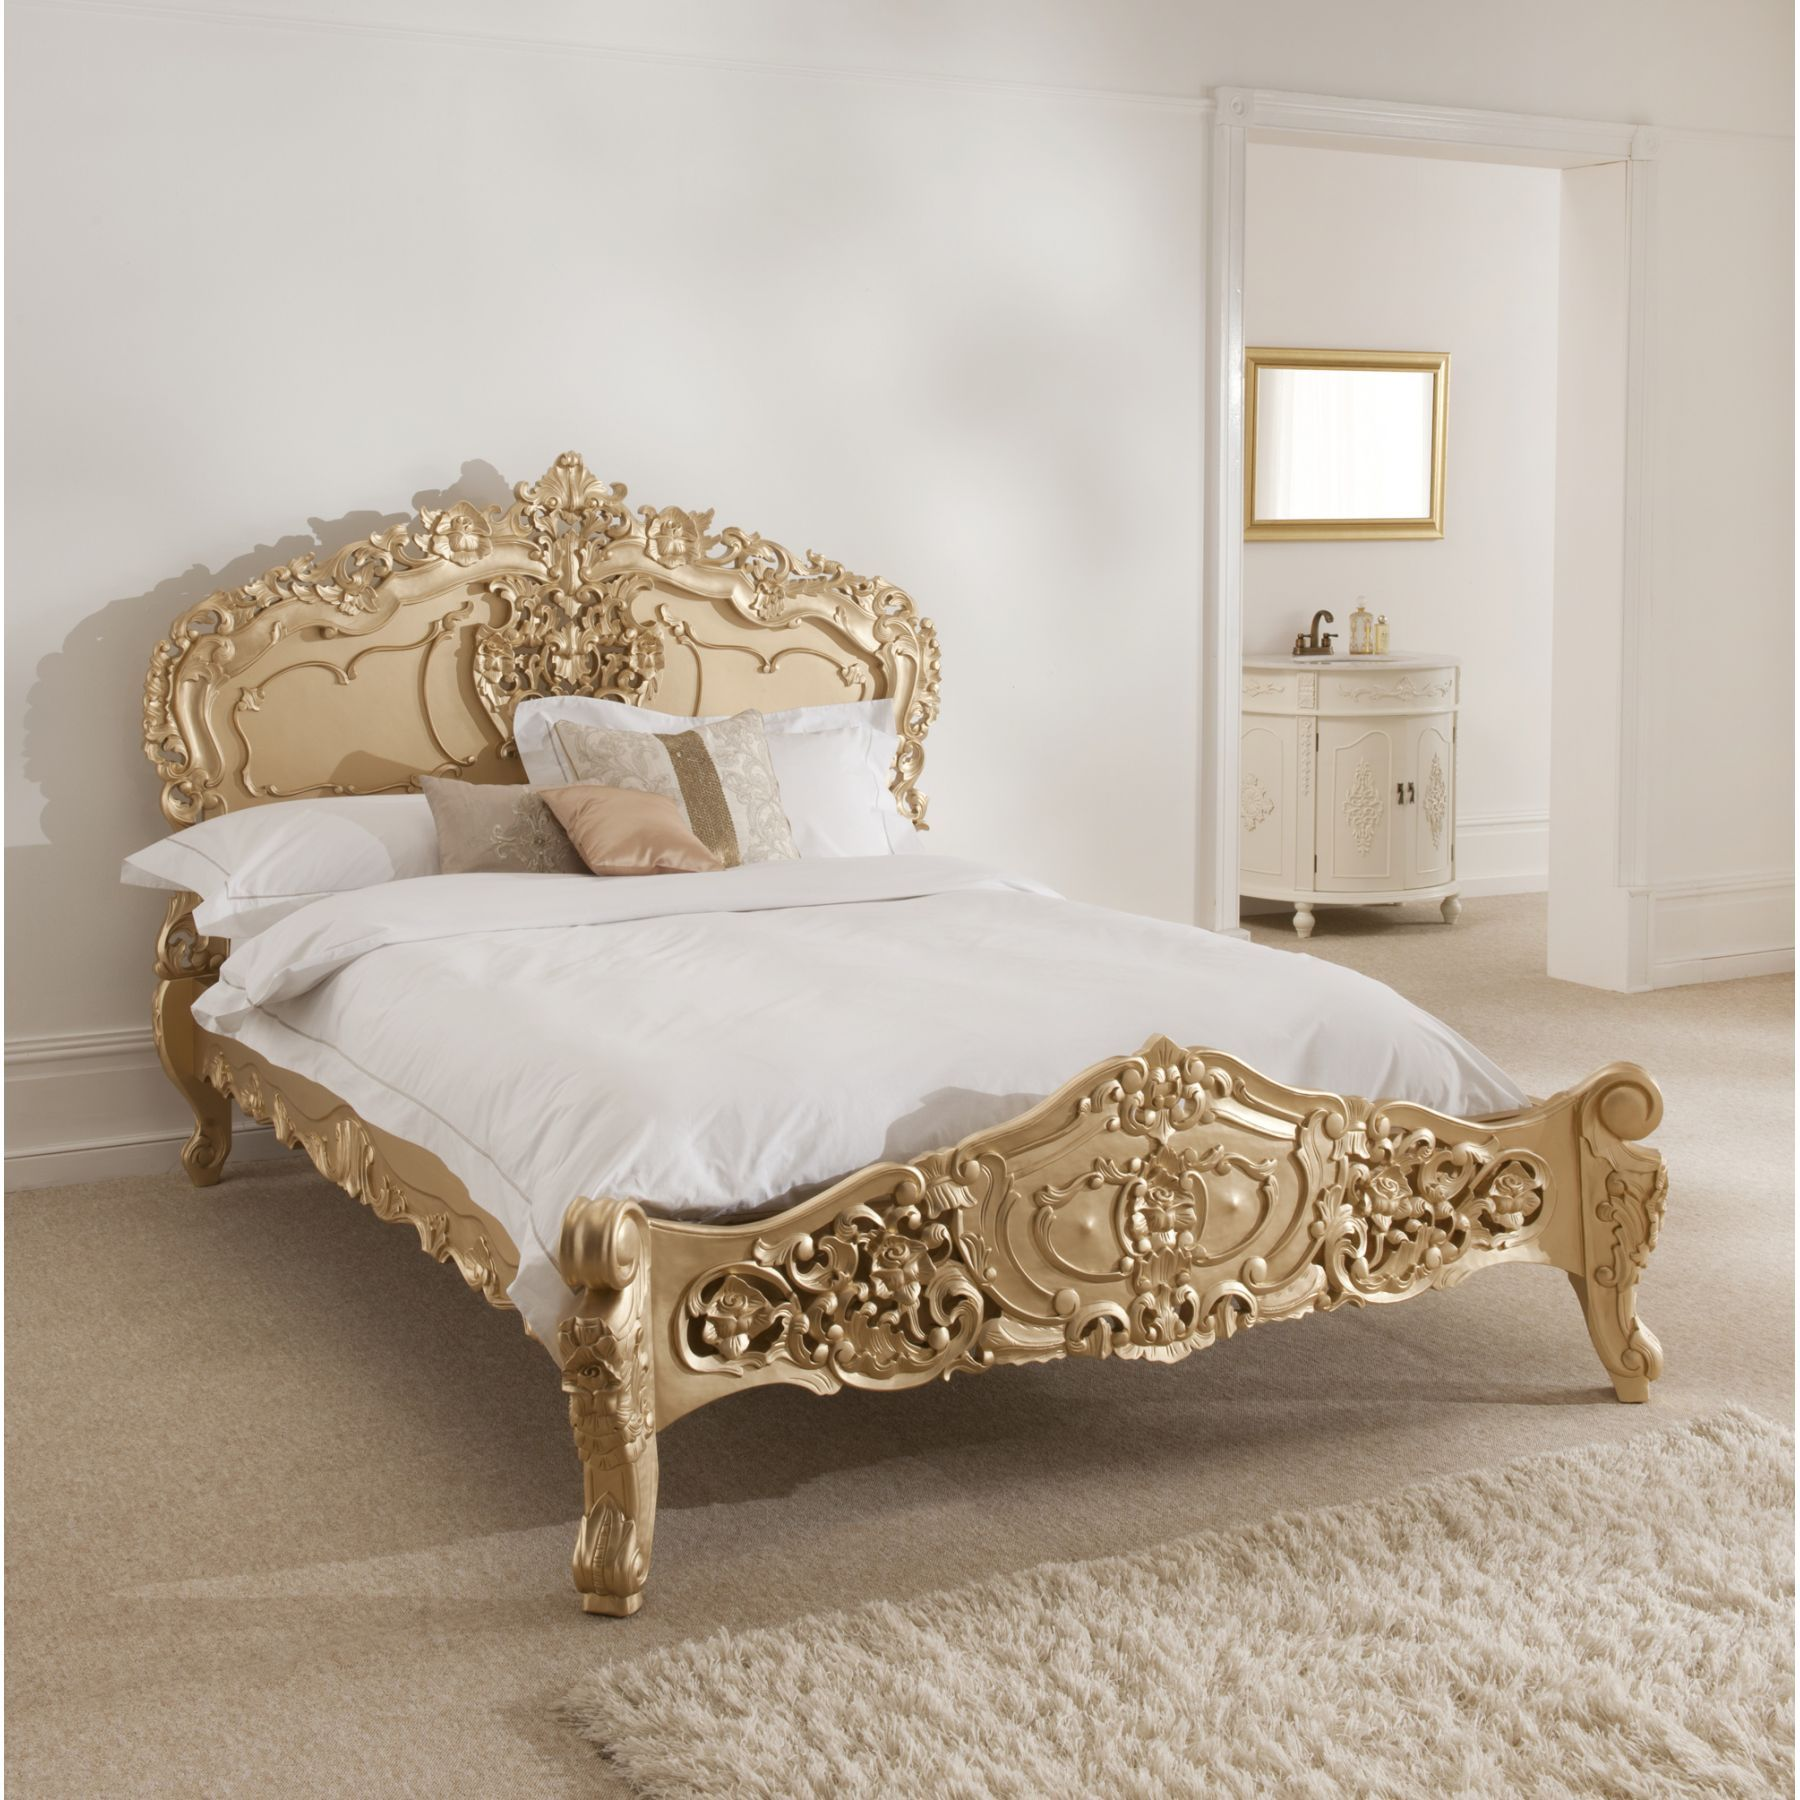 stylist and luxury french style bedroom chairs. Intriguing French Style Bedroom Furniture in White  Antique Carved Bed Bunk Cream Carpet Rug Rococo finished gold my dream bed